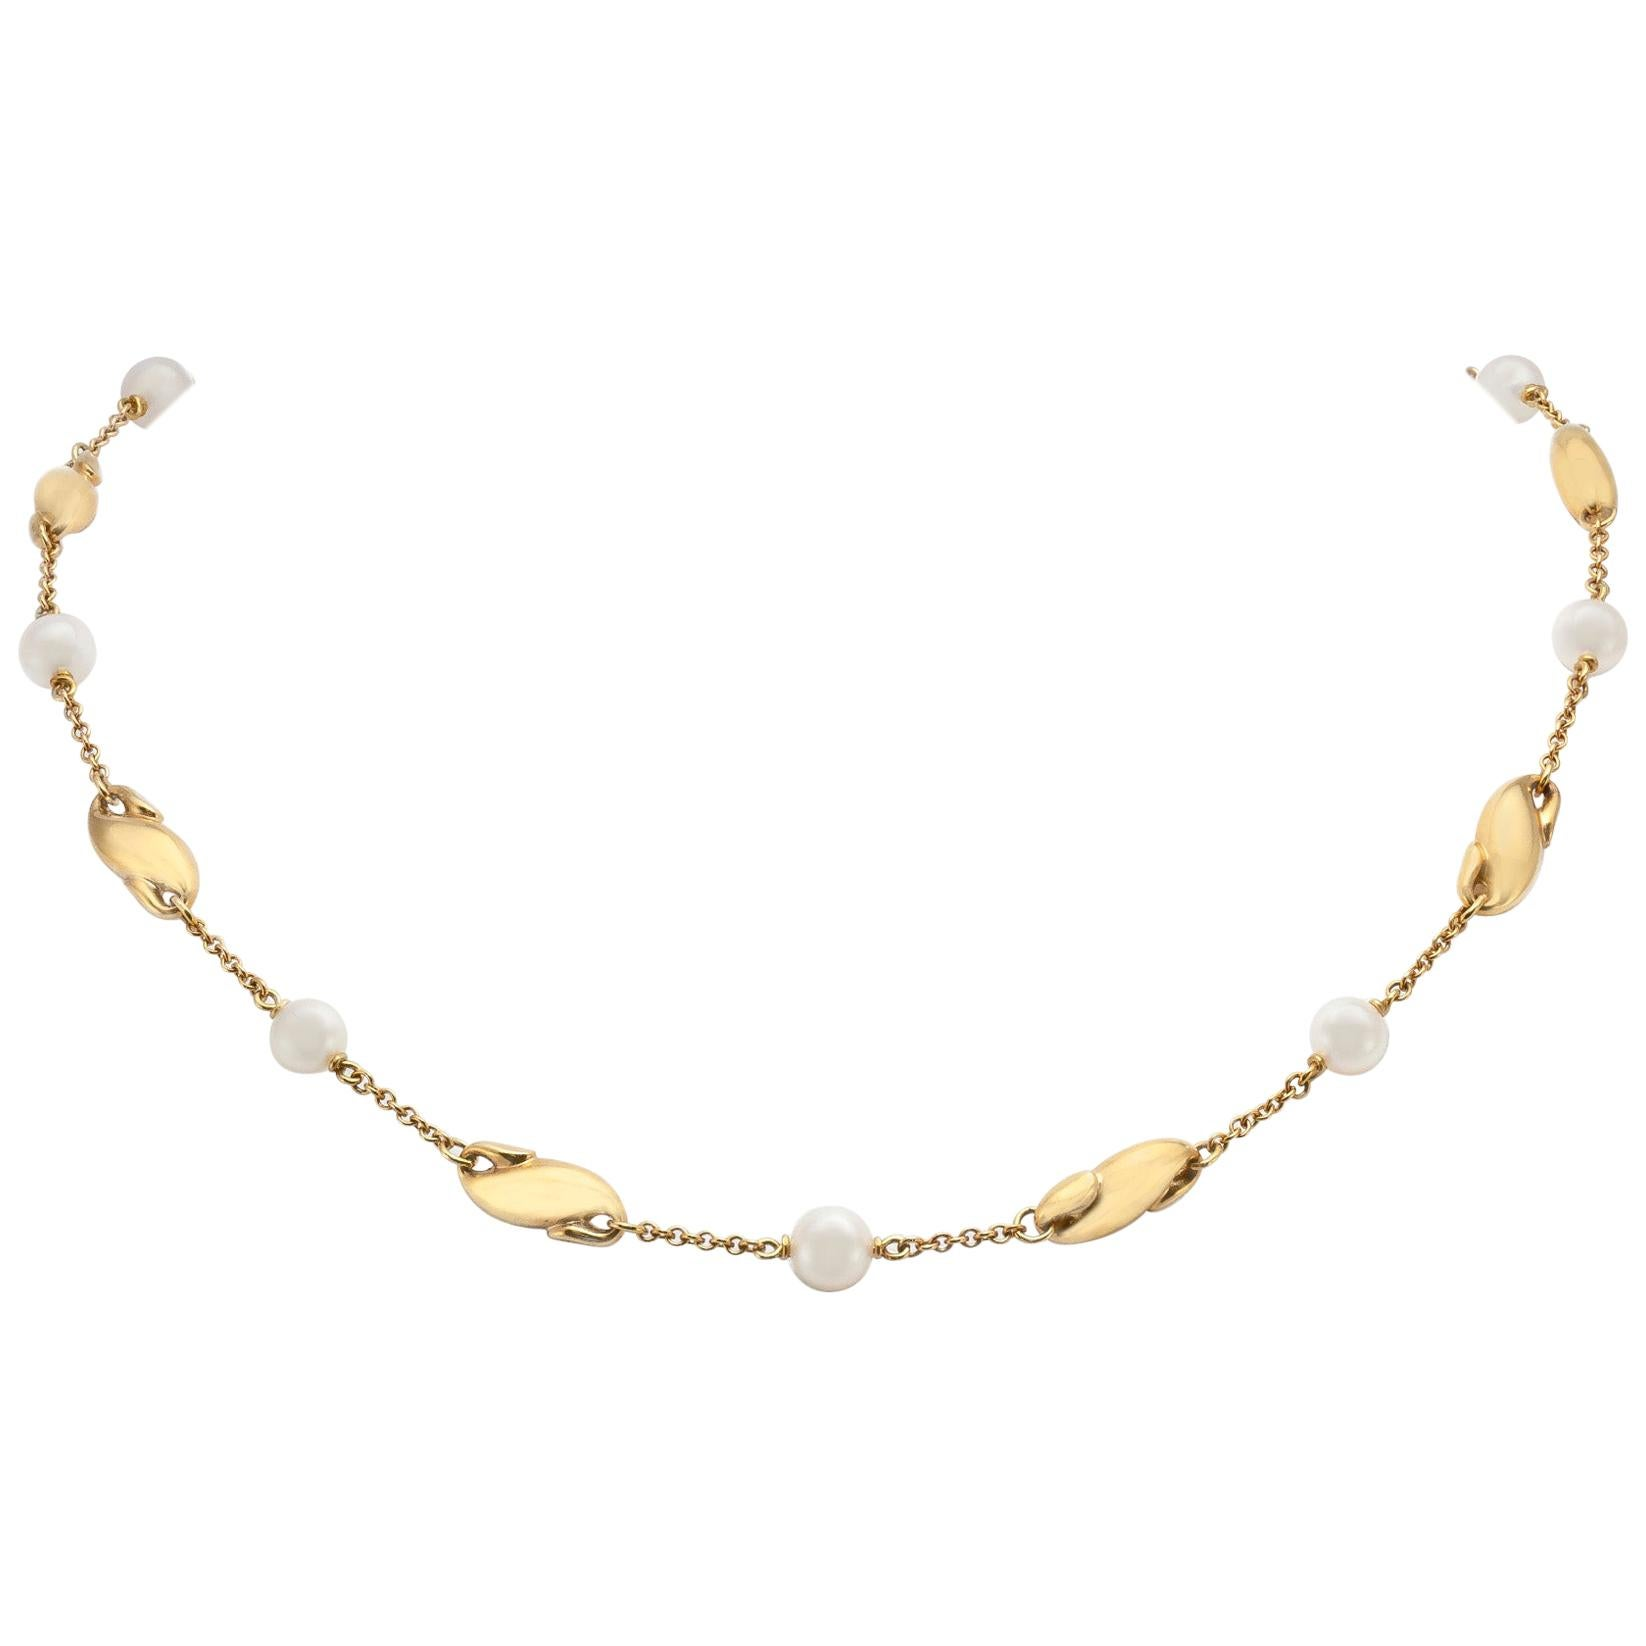 Elsa Peretti for Tiffany & Co. Gold and Mother of Pearl Necklace